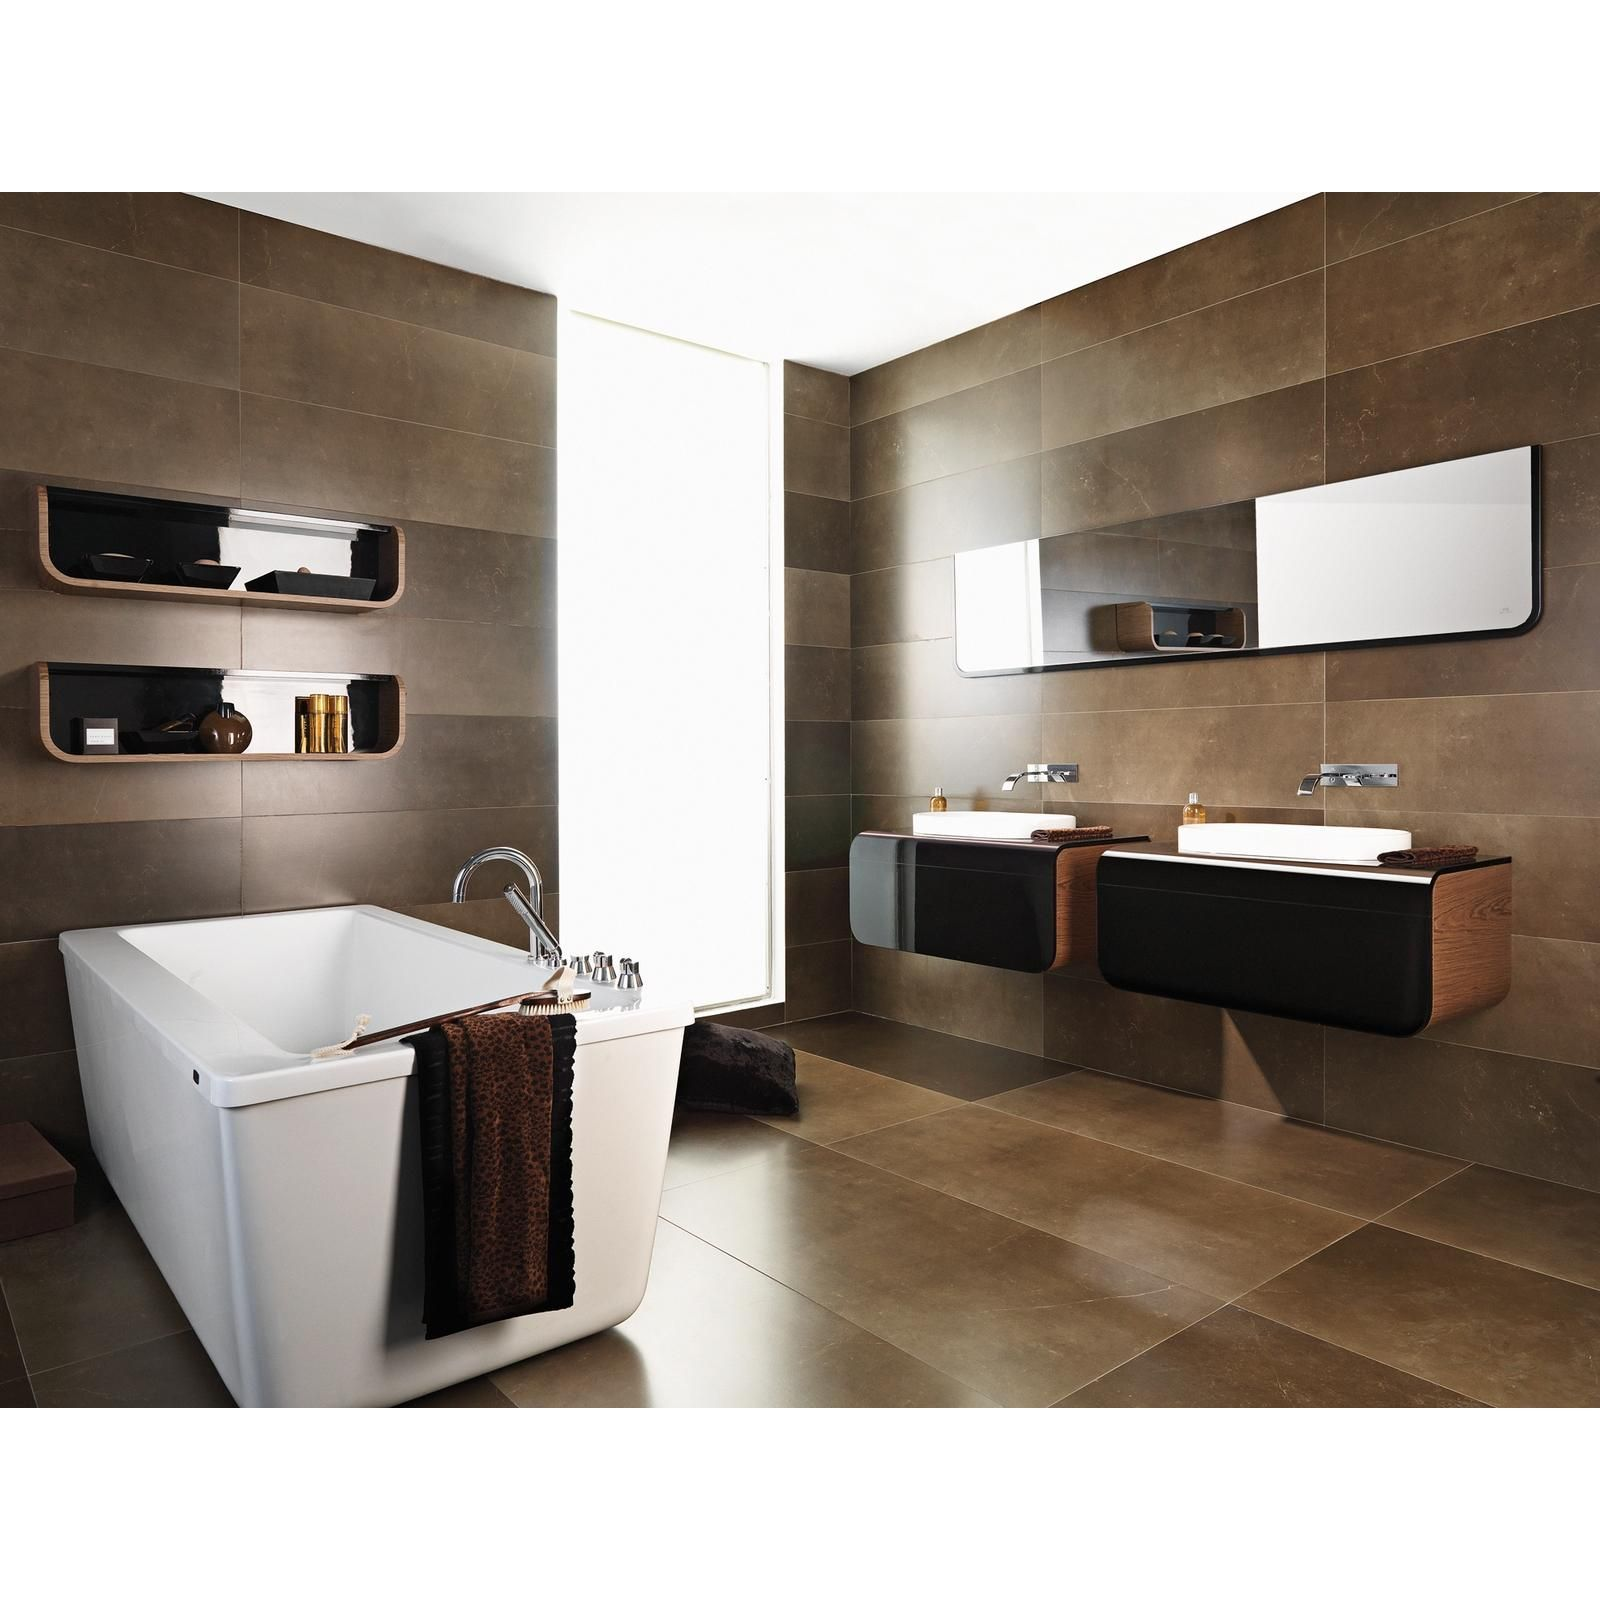 Ceramica Baños Porcelanosa Porcelanosa Floor Tiles Wall Tiles Bathroom Tiles